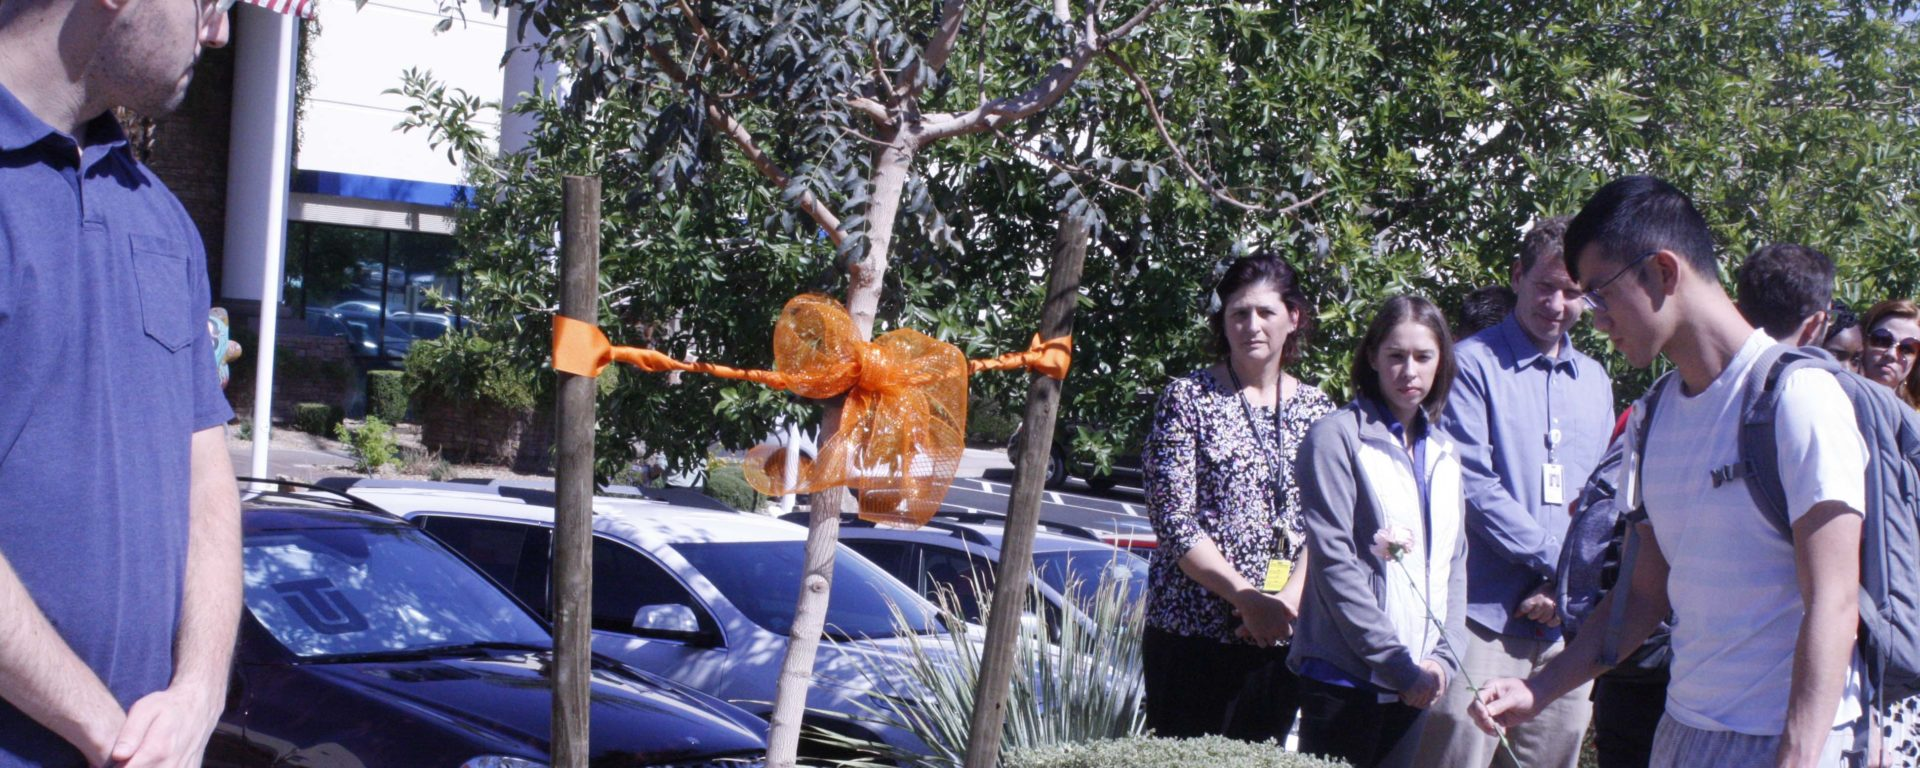 Touro University Nevada honored the victims of the Route 91 Harvest Festival shooting with a special on-campus ceremony, including a tree dedication in front of the university.